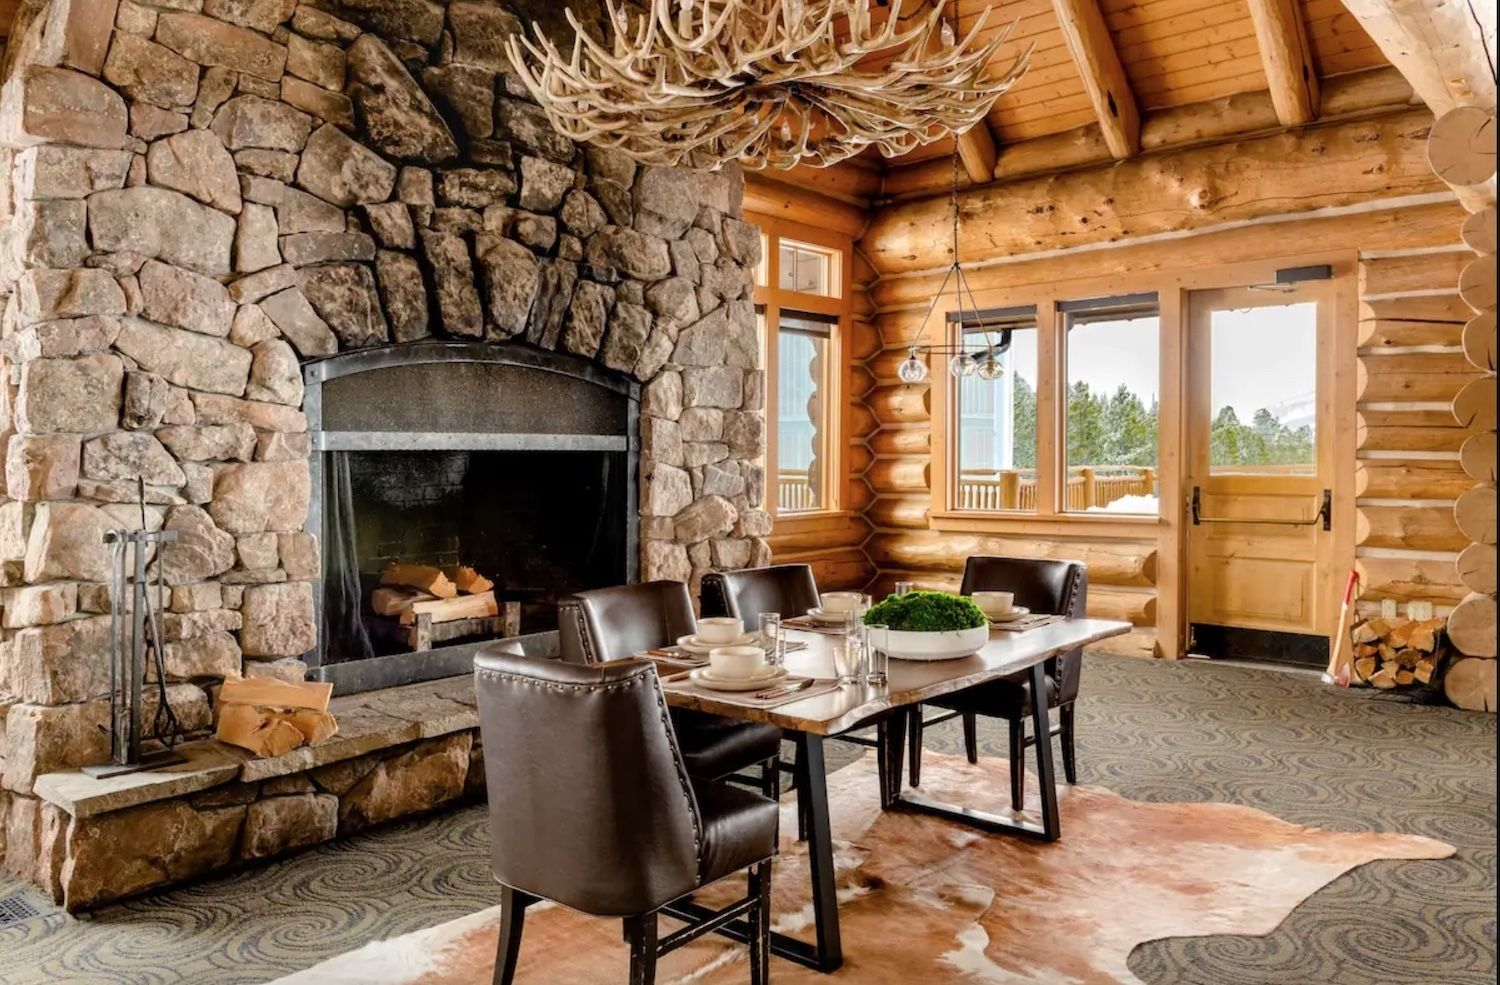 Airbnb Andesite Mountain in Big Sky, Montana fireplace and dining room, airbnb montana mountain stay